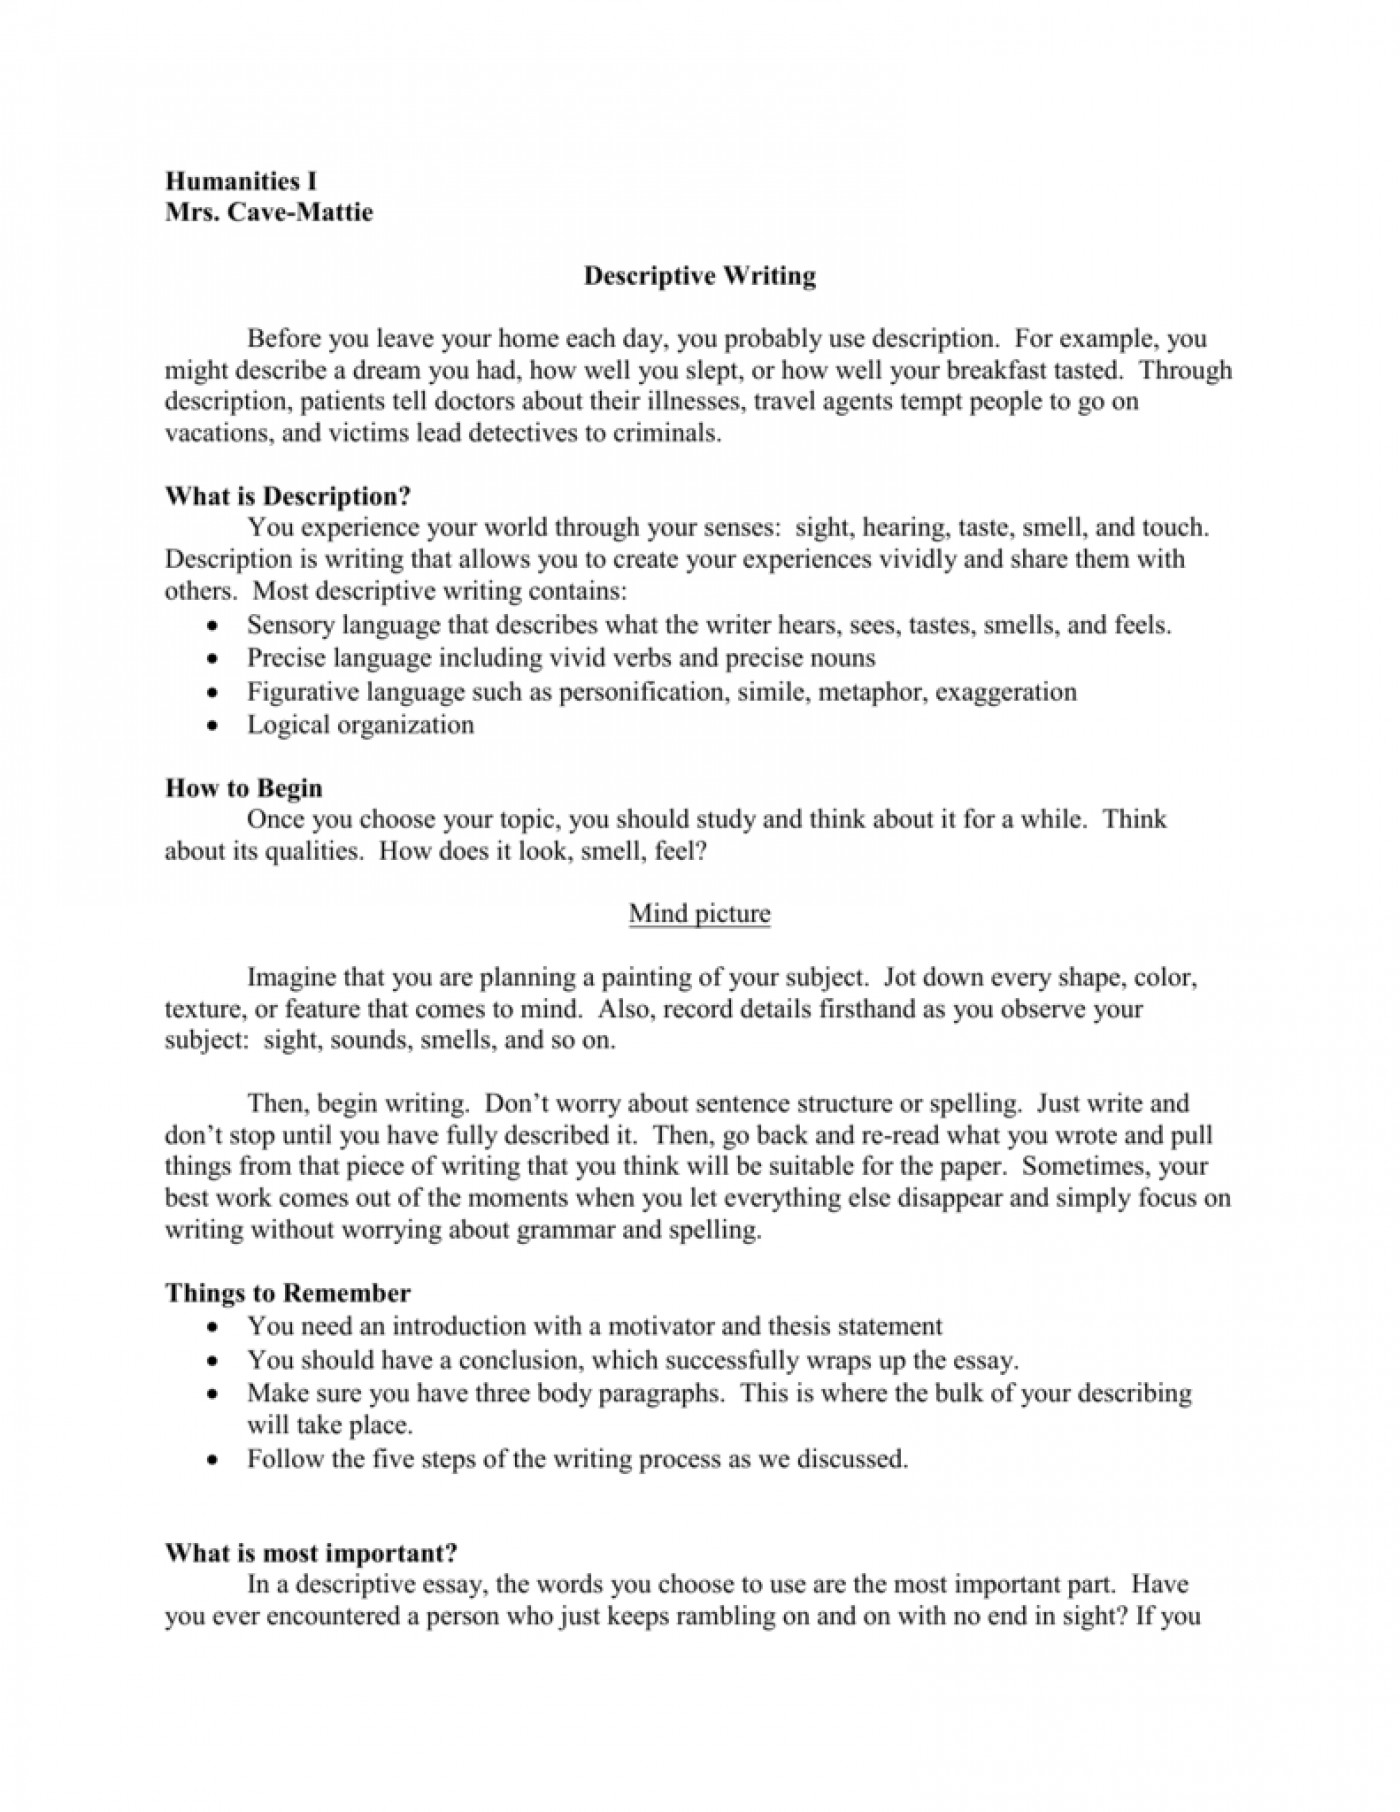 018 examples of descriptive essays example essay person writing